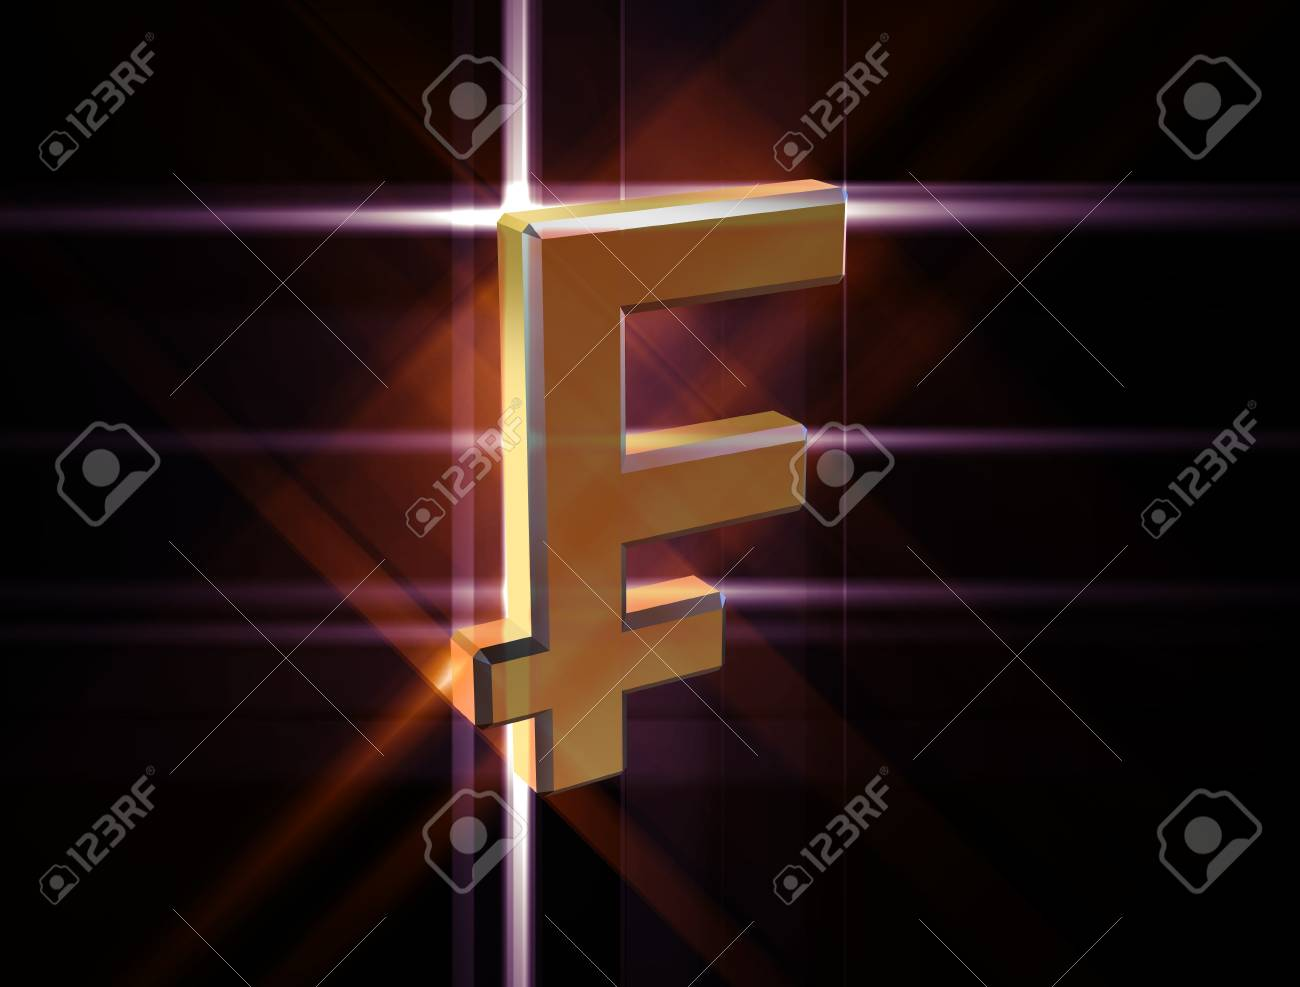 three-dimensional image of the gold franc symbol among the colored rays - 74615796